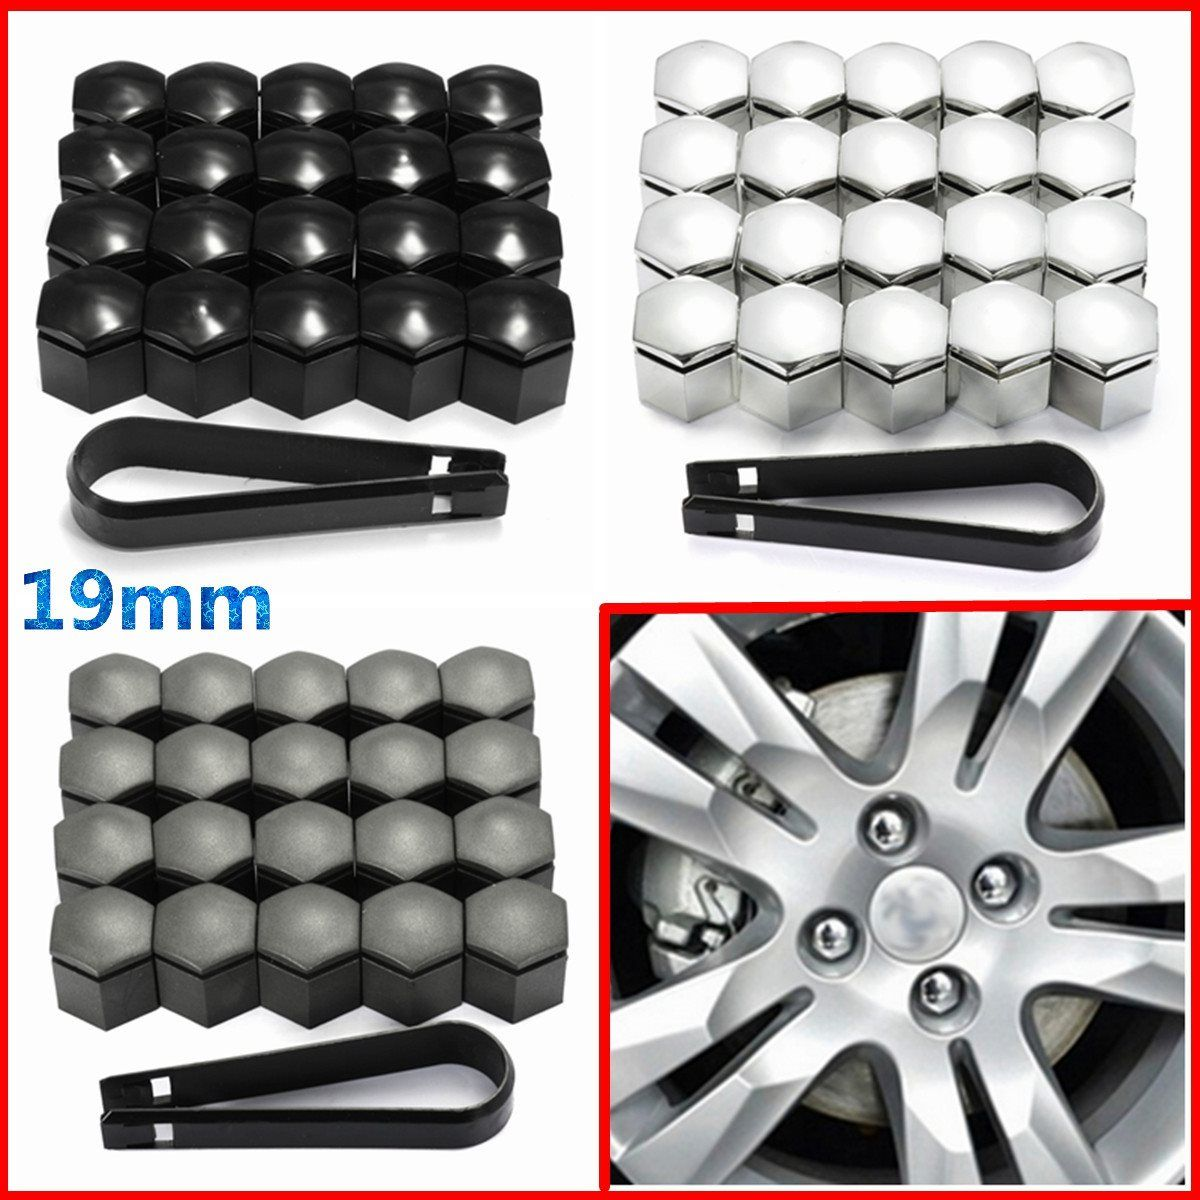 20pcs 19mm Wheel Nut Cover Bolt Cap Protector For Vauxhall Opel Romove Tool Key